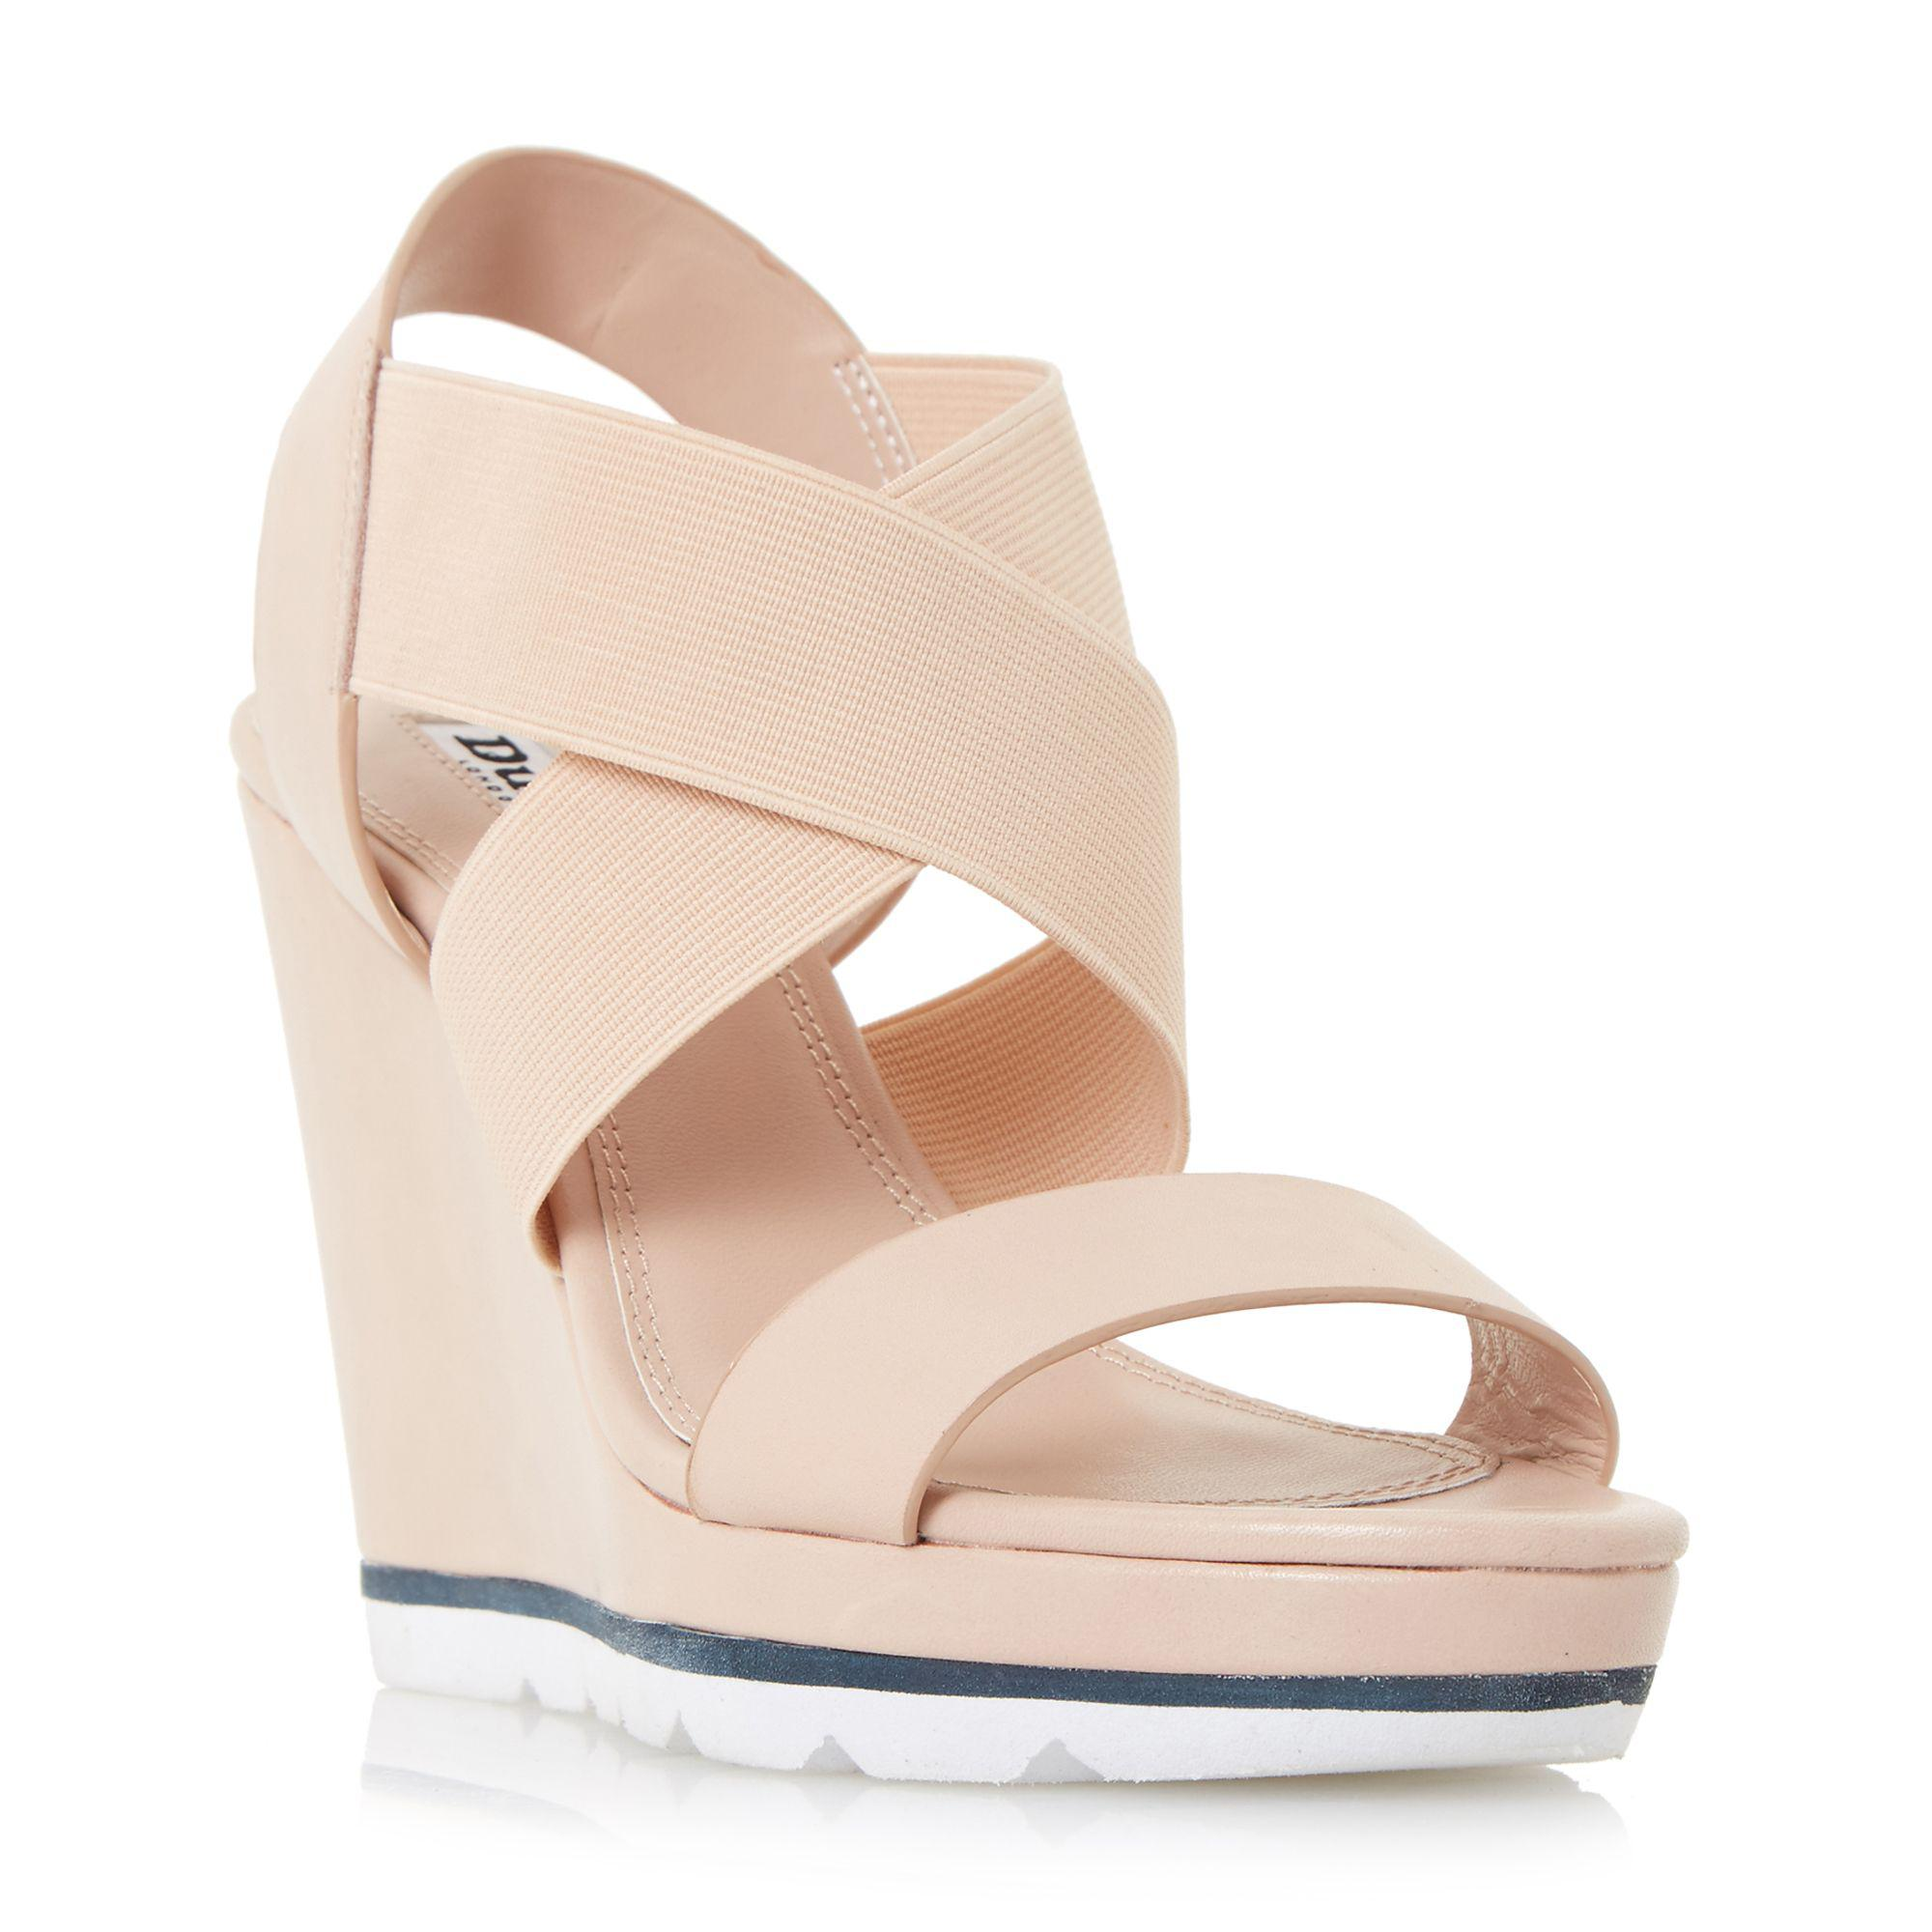 8556aec25660 Dune. Women s Natural  kalifornia  White Outsole Cross Strap Wedge Sandals